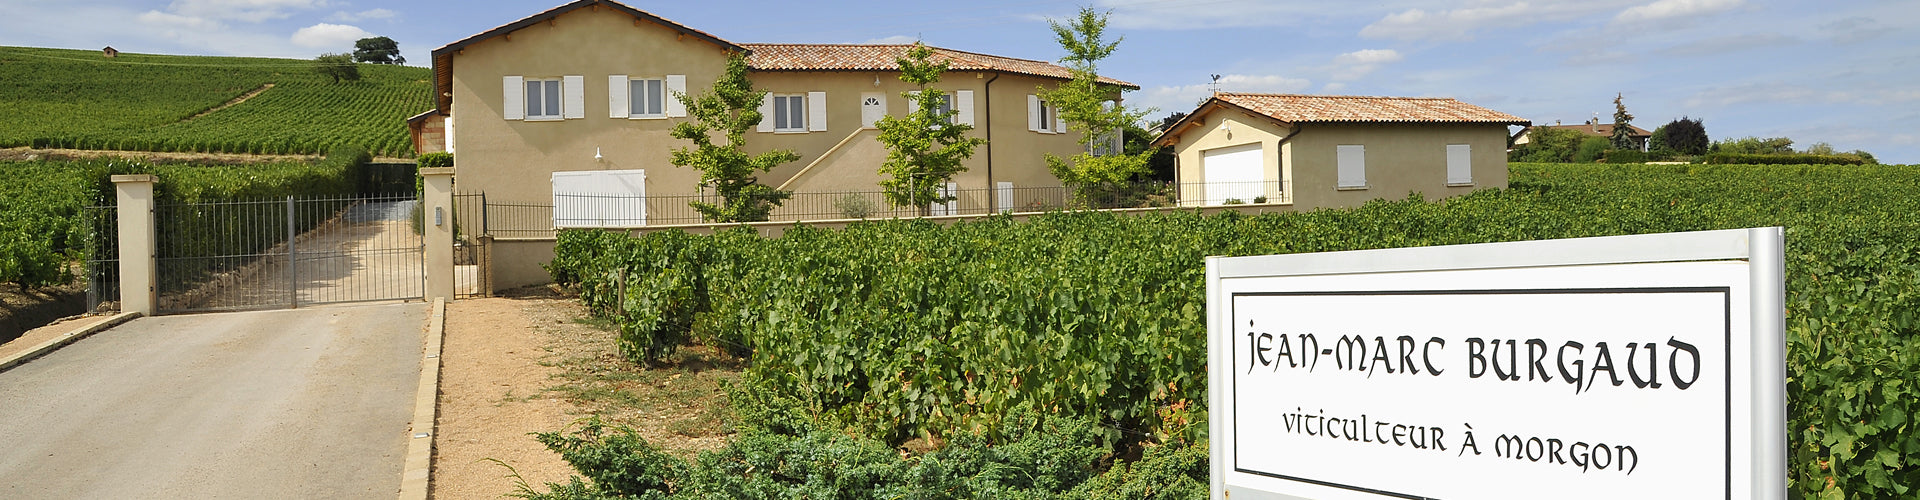 Jean-Marc Burgaud Winery Entrance and Vineyards